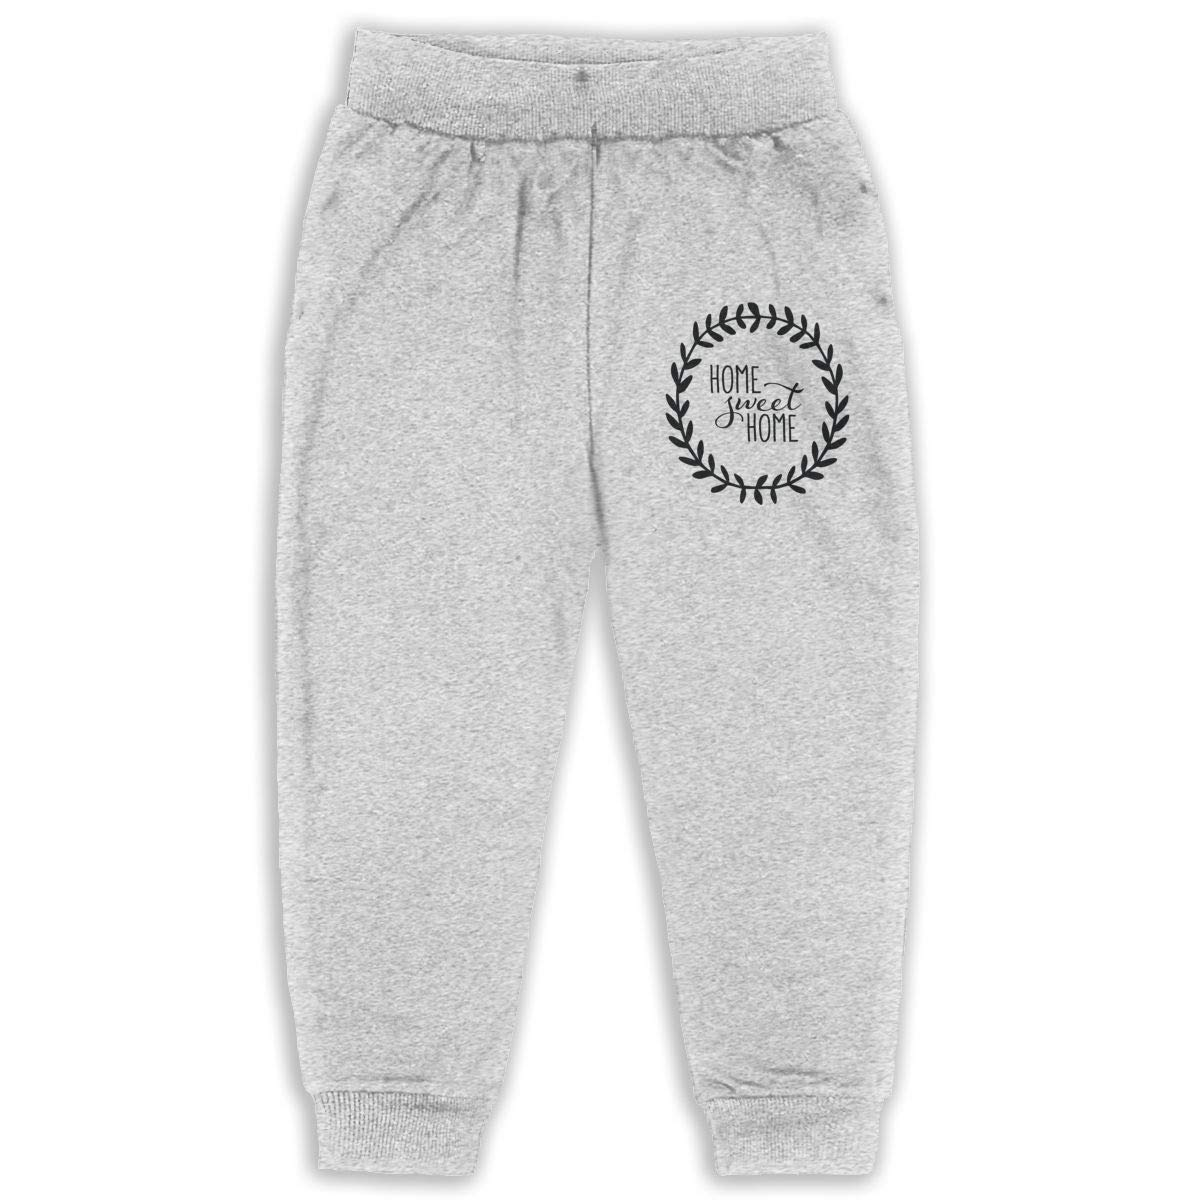 LFCLOSET Home Sweet Home Children Active Jogger Sweatpants Basic Elastic Sport Pants Gray